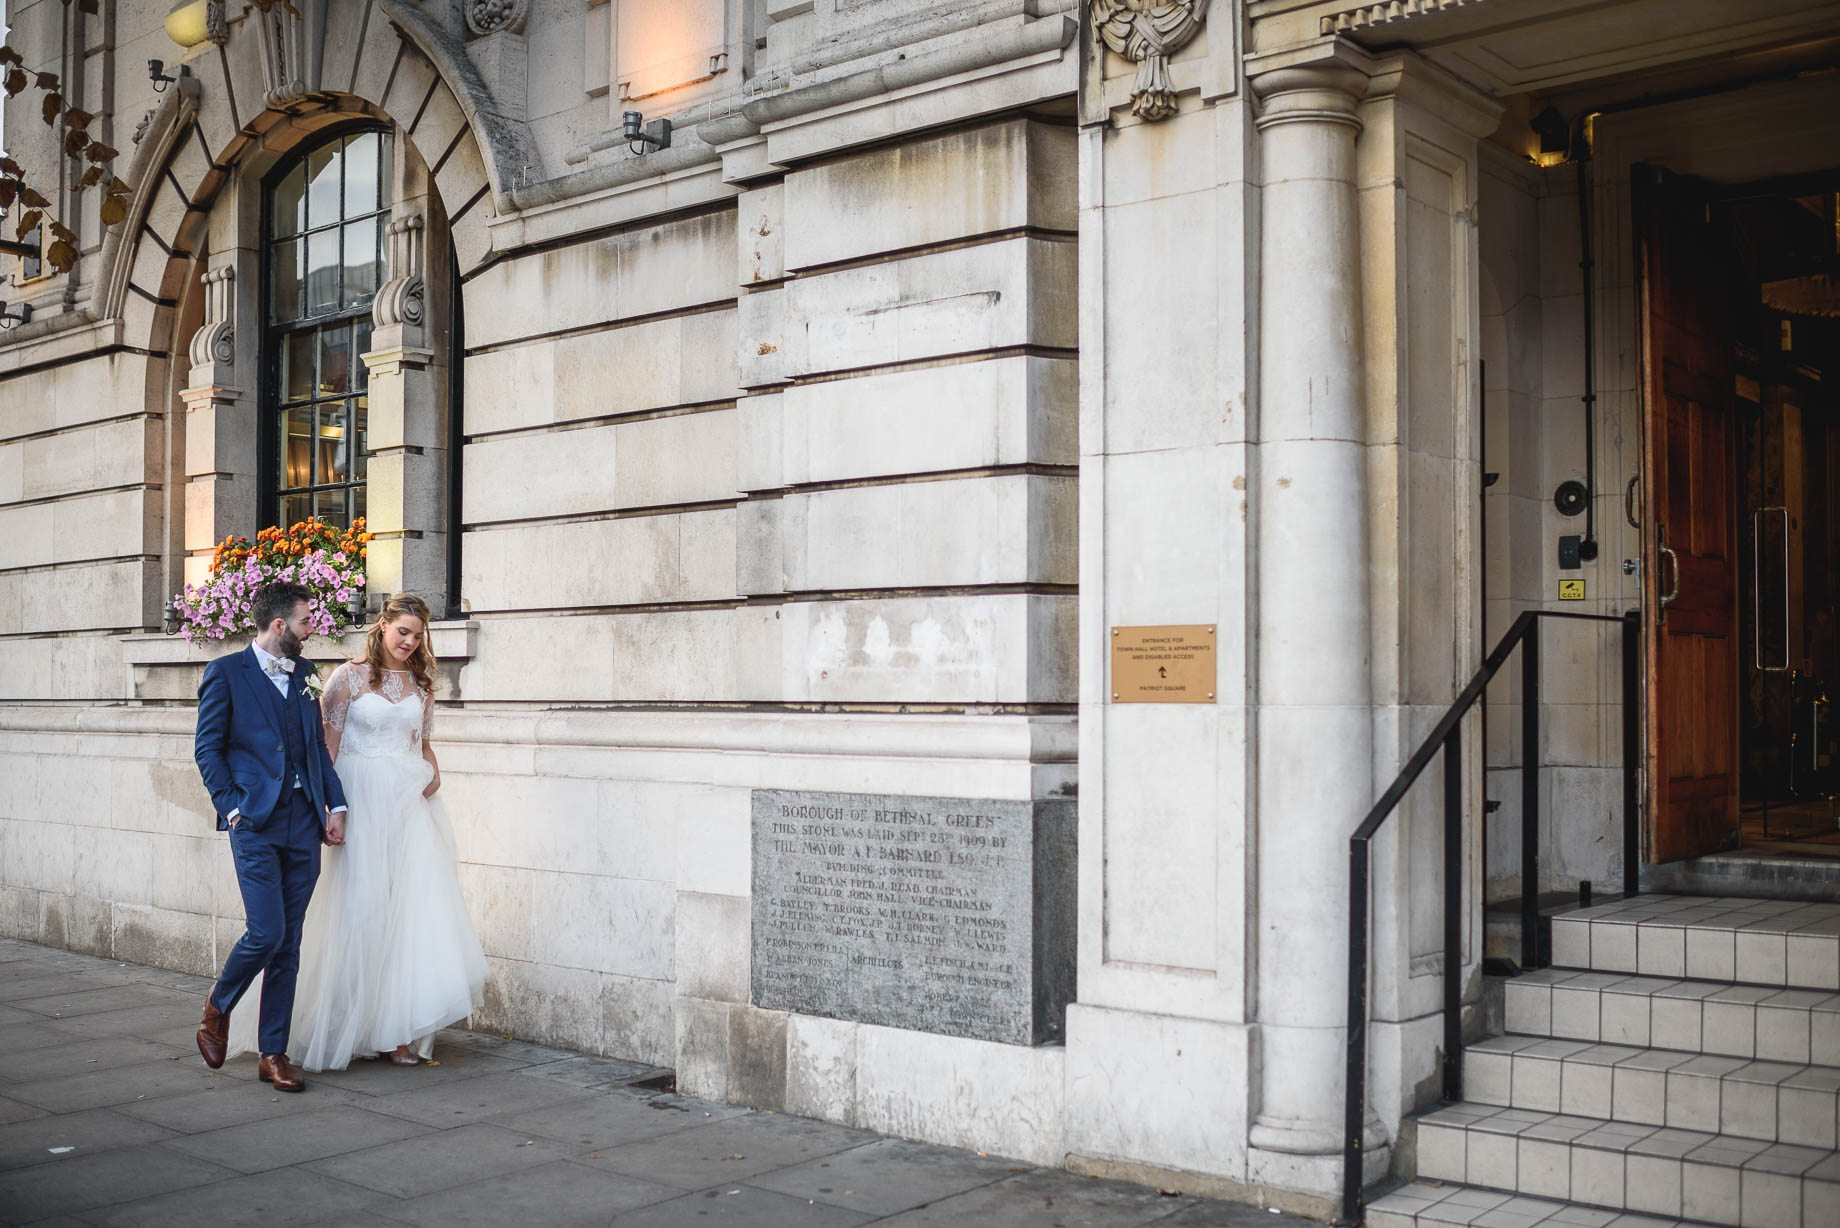 London Wedding Photography - Guy Collier Photography - LJ + Russell (132 of 155)